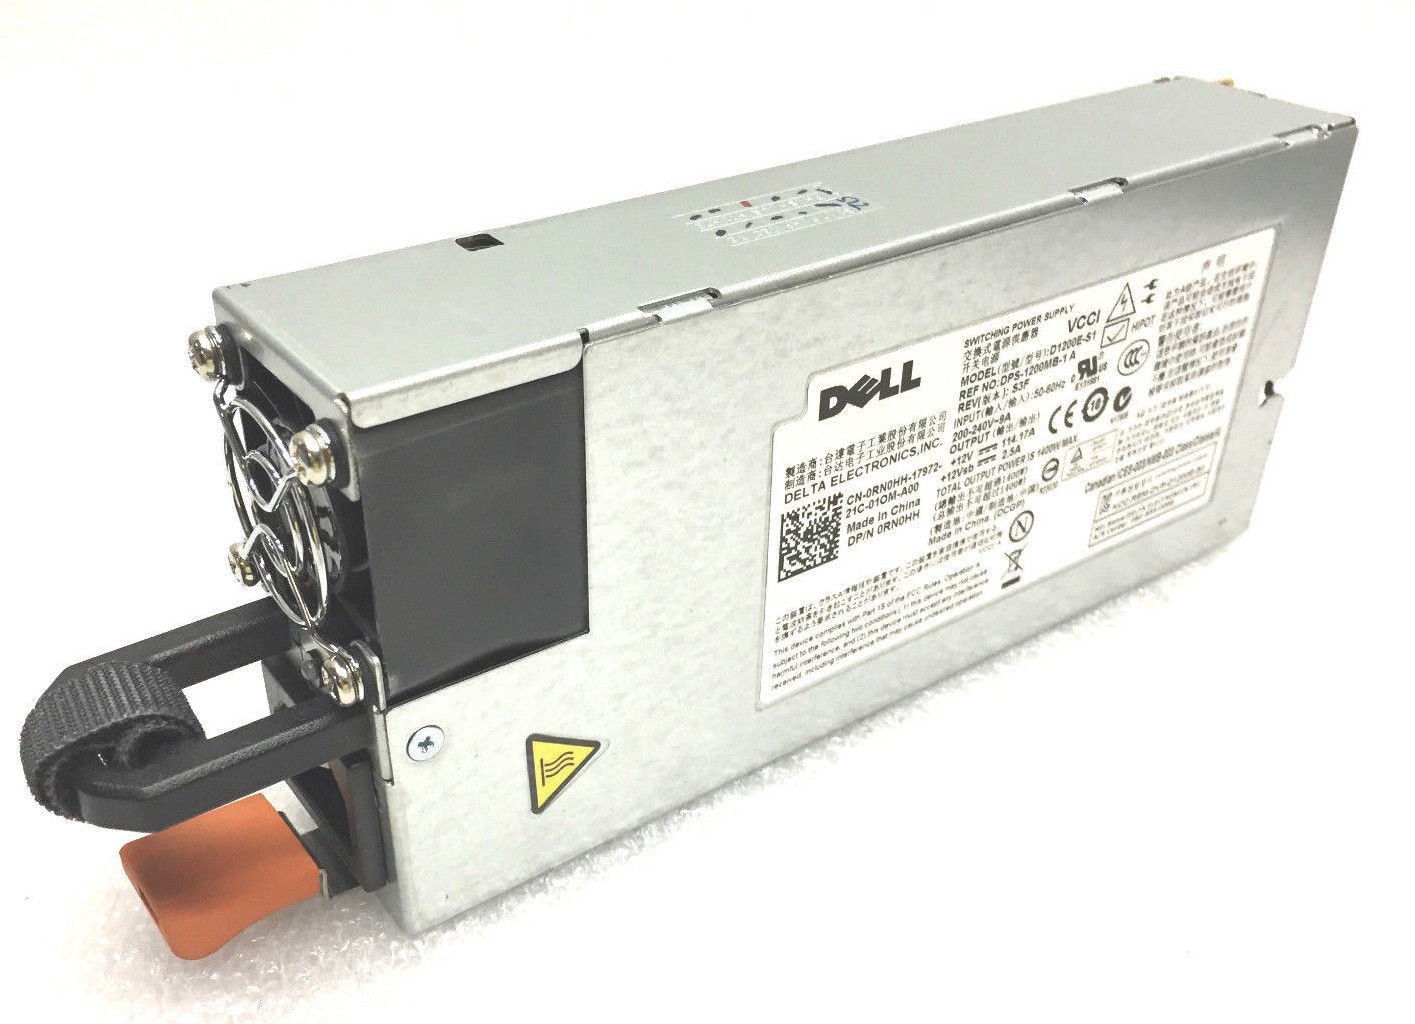 Dell PowerEdge C6220 1400W Watt Hot Swap Power Supply (RN0HH)